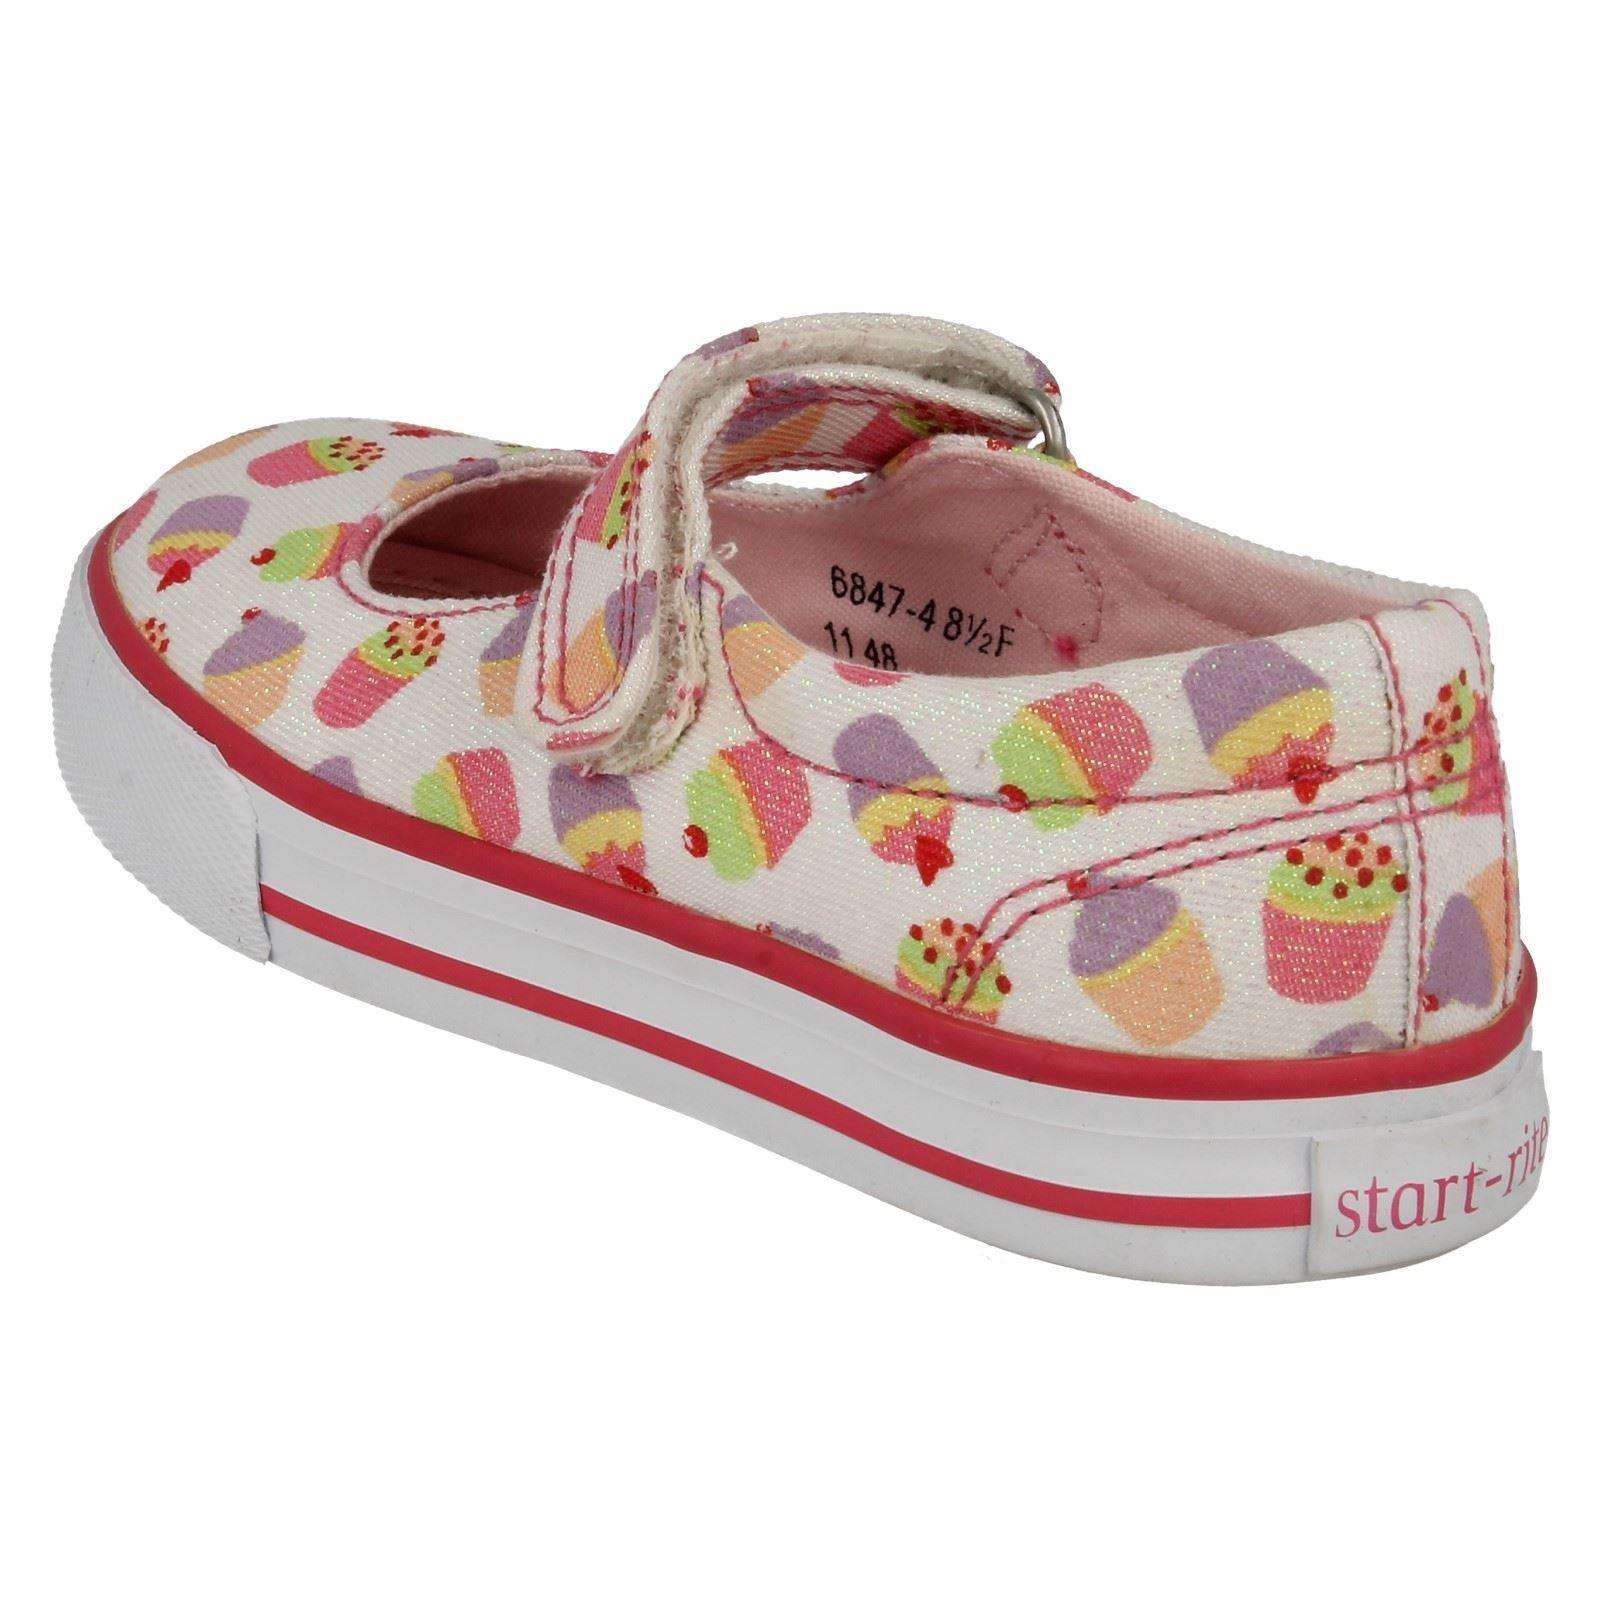 Girls Startrite Canvas Shoes Cupcake